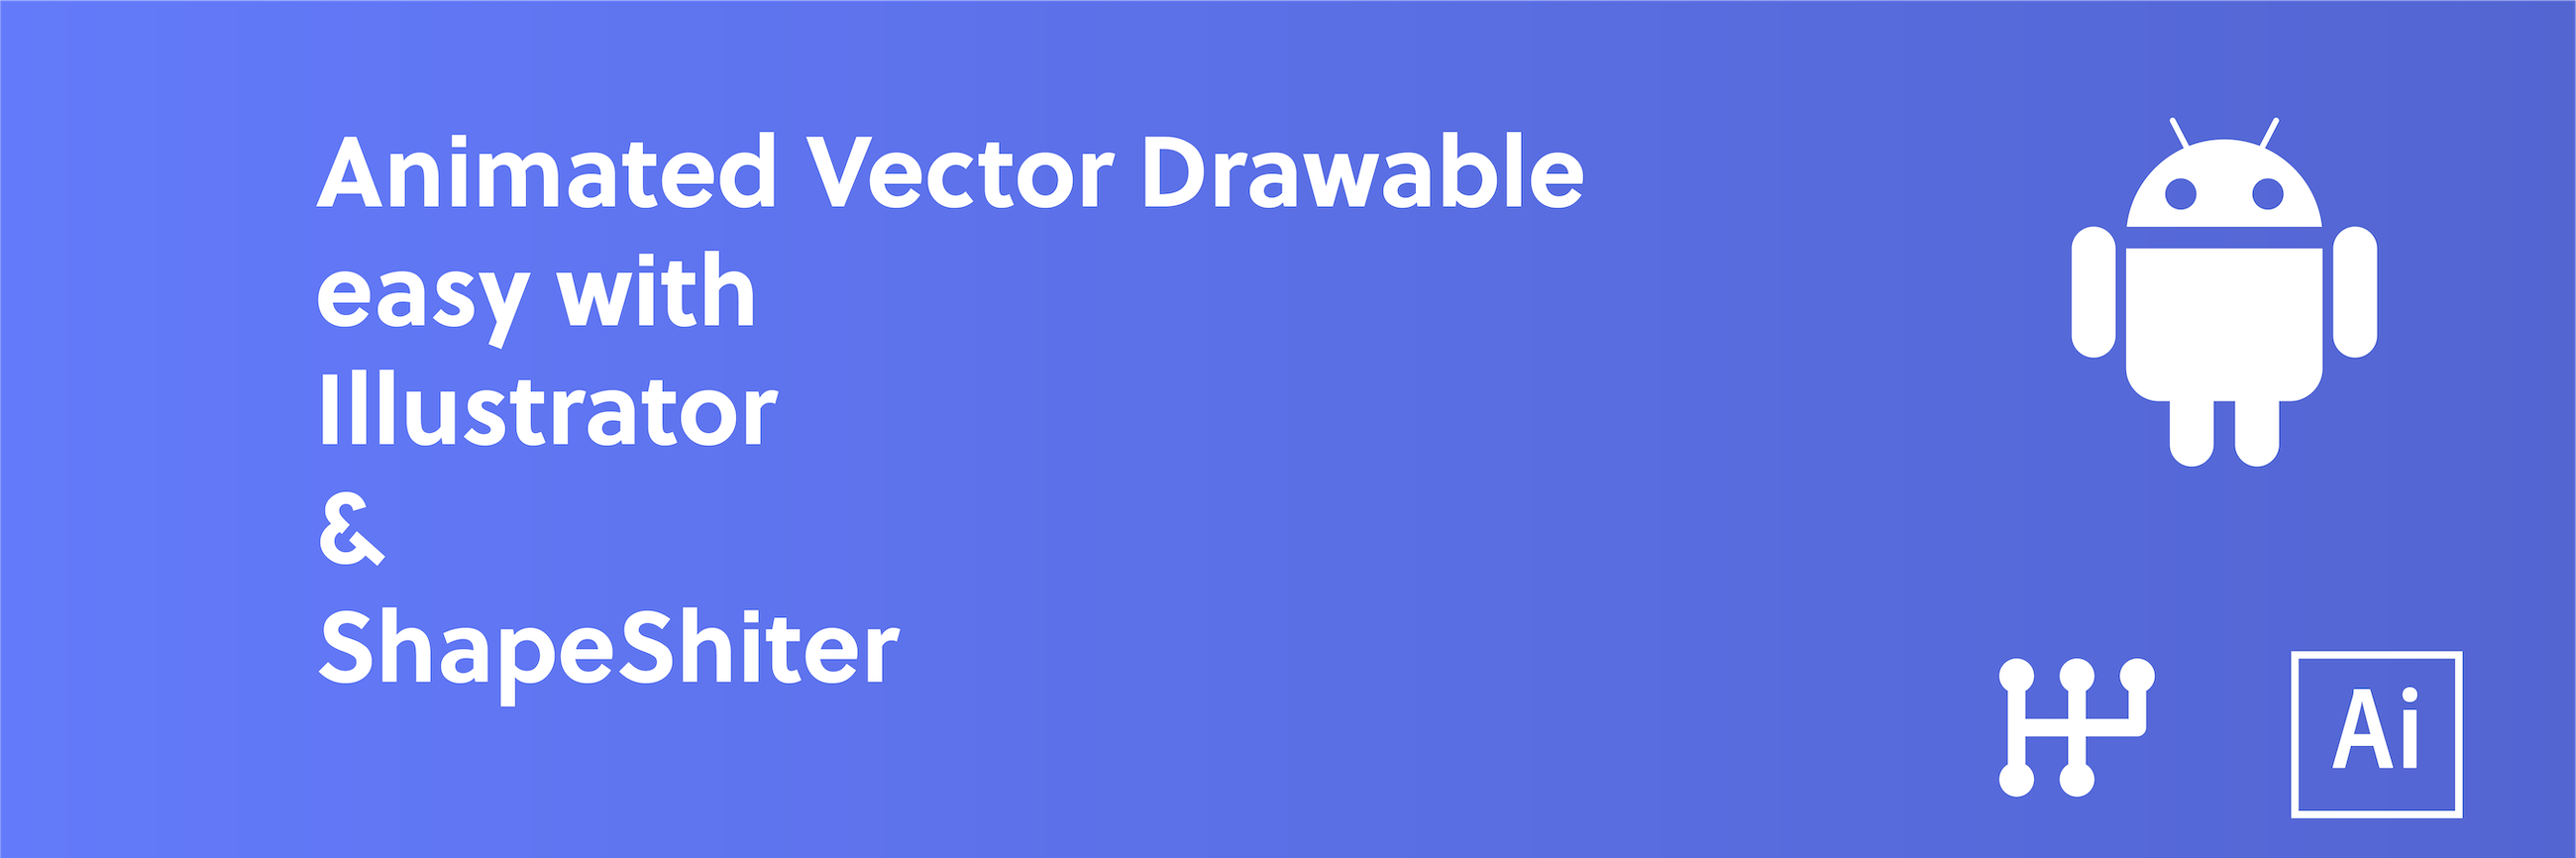 AnimatedVectorDrawable easy with Illustrator and ShapeShifter